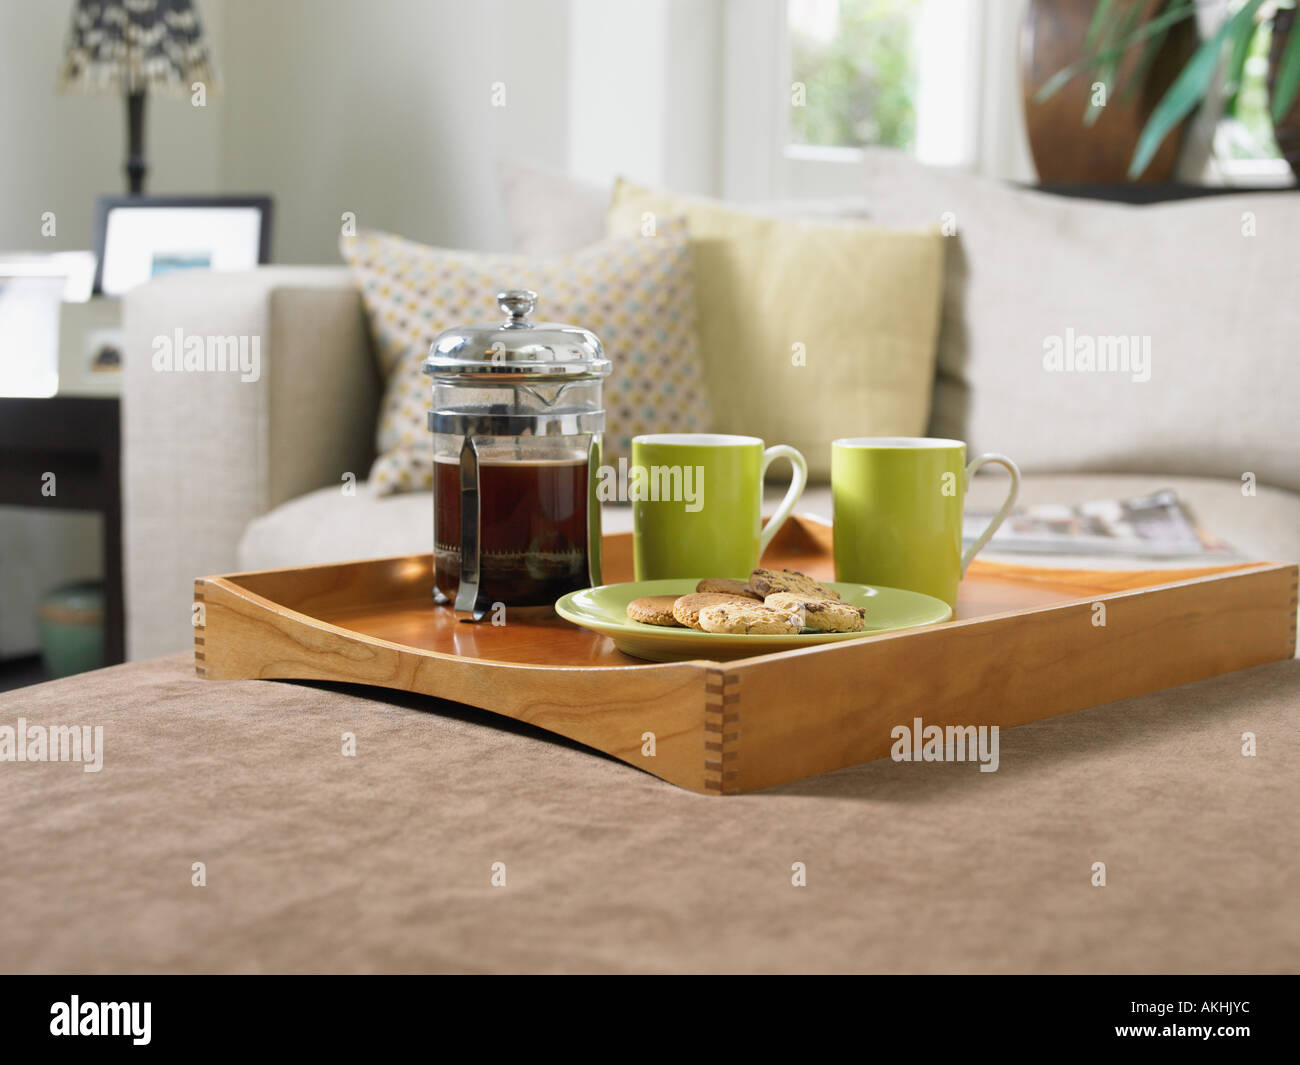 Coffee and biscuits on a tray - Stock Image